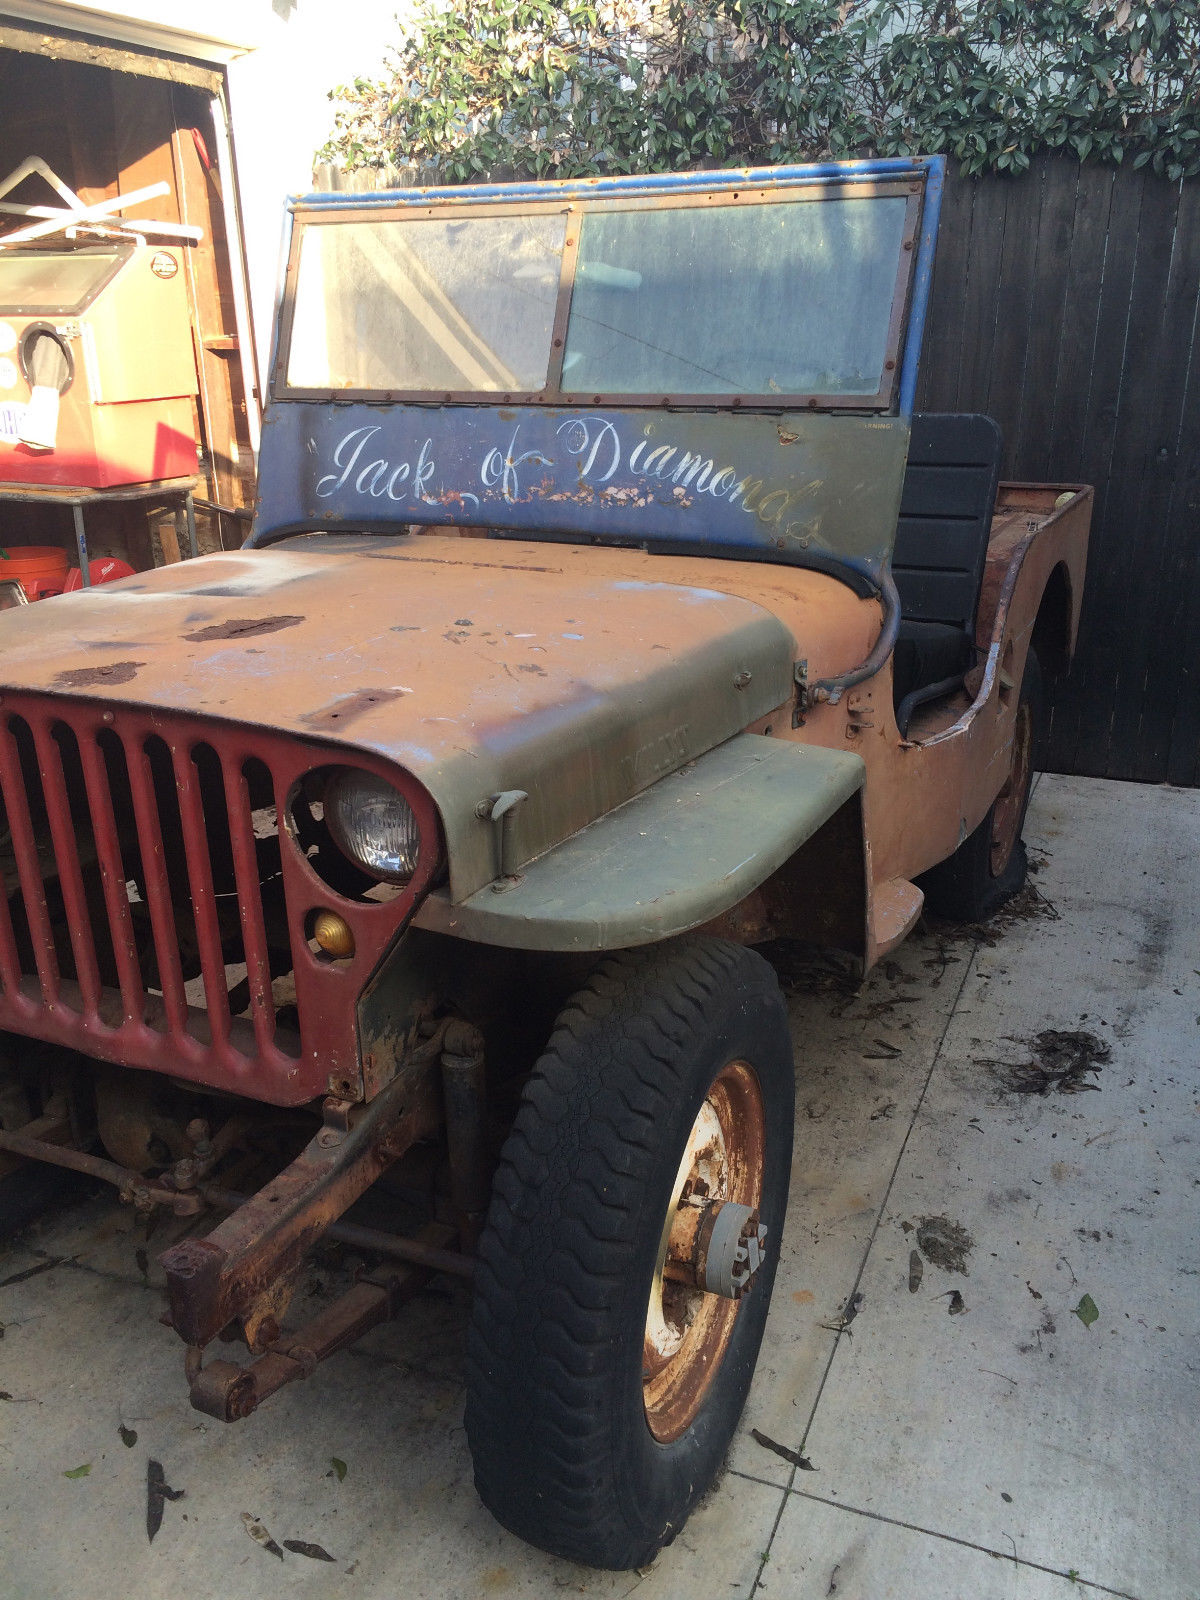 1949 Willys Cj3a 4x4 Jeep Like Mb Project Vehicle For Sale In Long Beach California United States For Sale Photos Technical Specifications Description